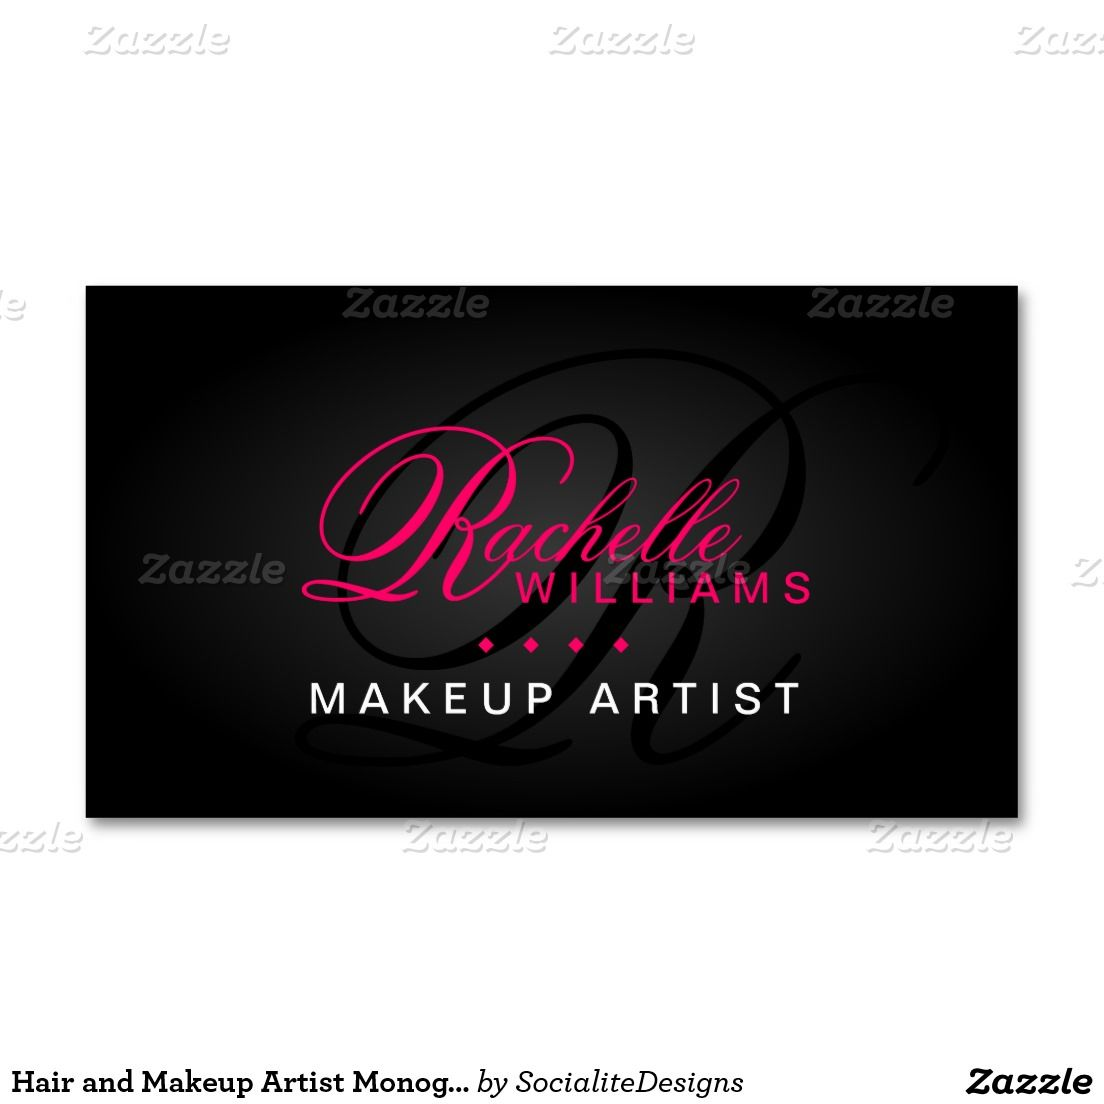 Hair and Makeup Artist Monogram Business Card | Business cards ...